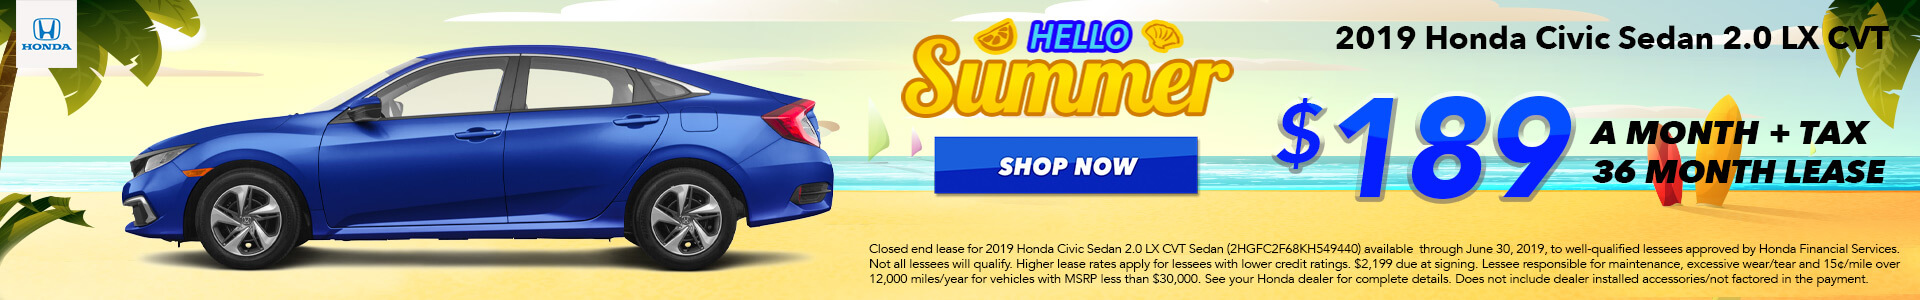 2019 Honda Civic Lease for $189